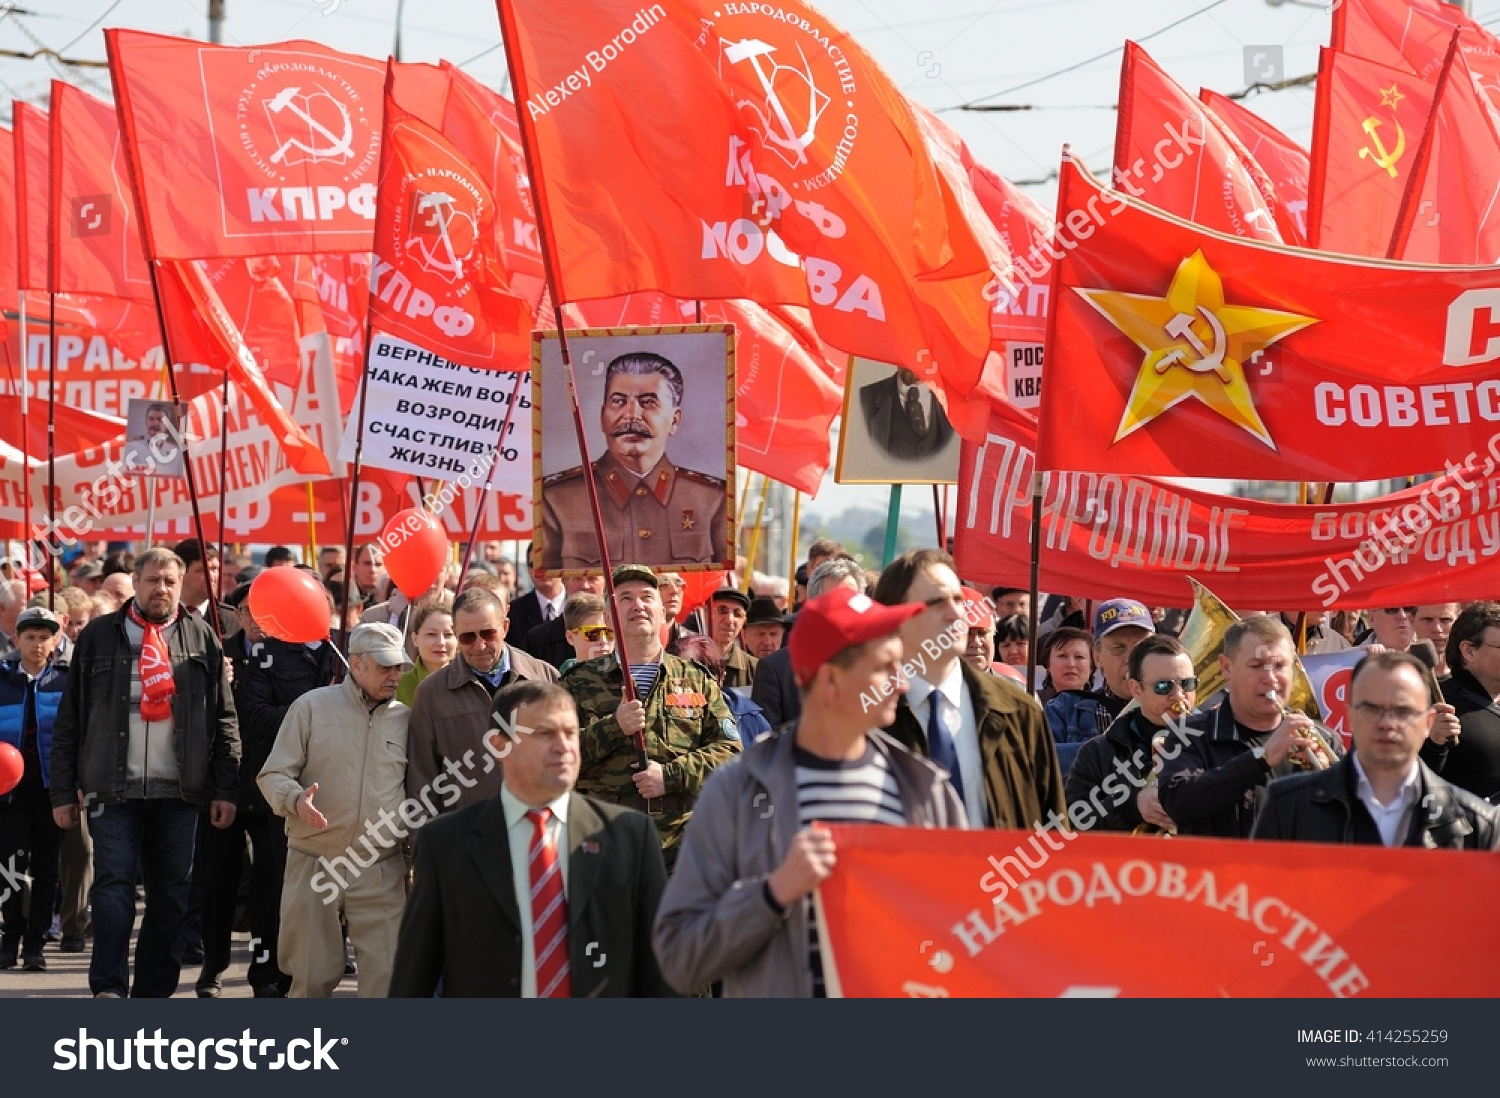 Orel, Russia - May 1, 2016: Communist party demonstration. People carrying red flags and Stalin's portrait